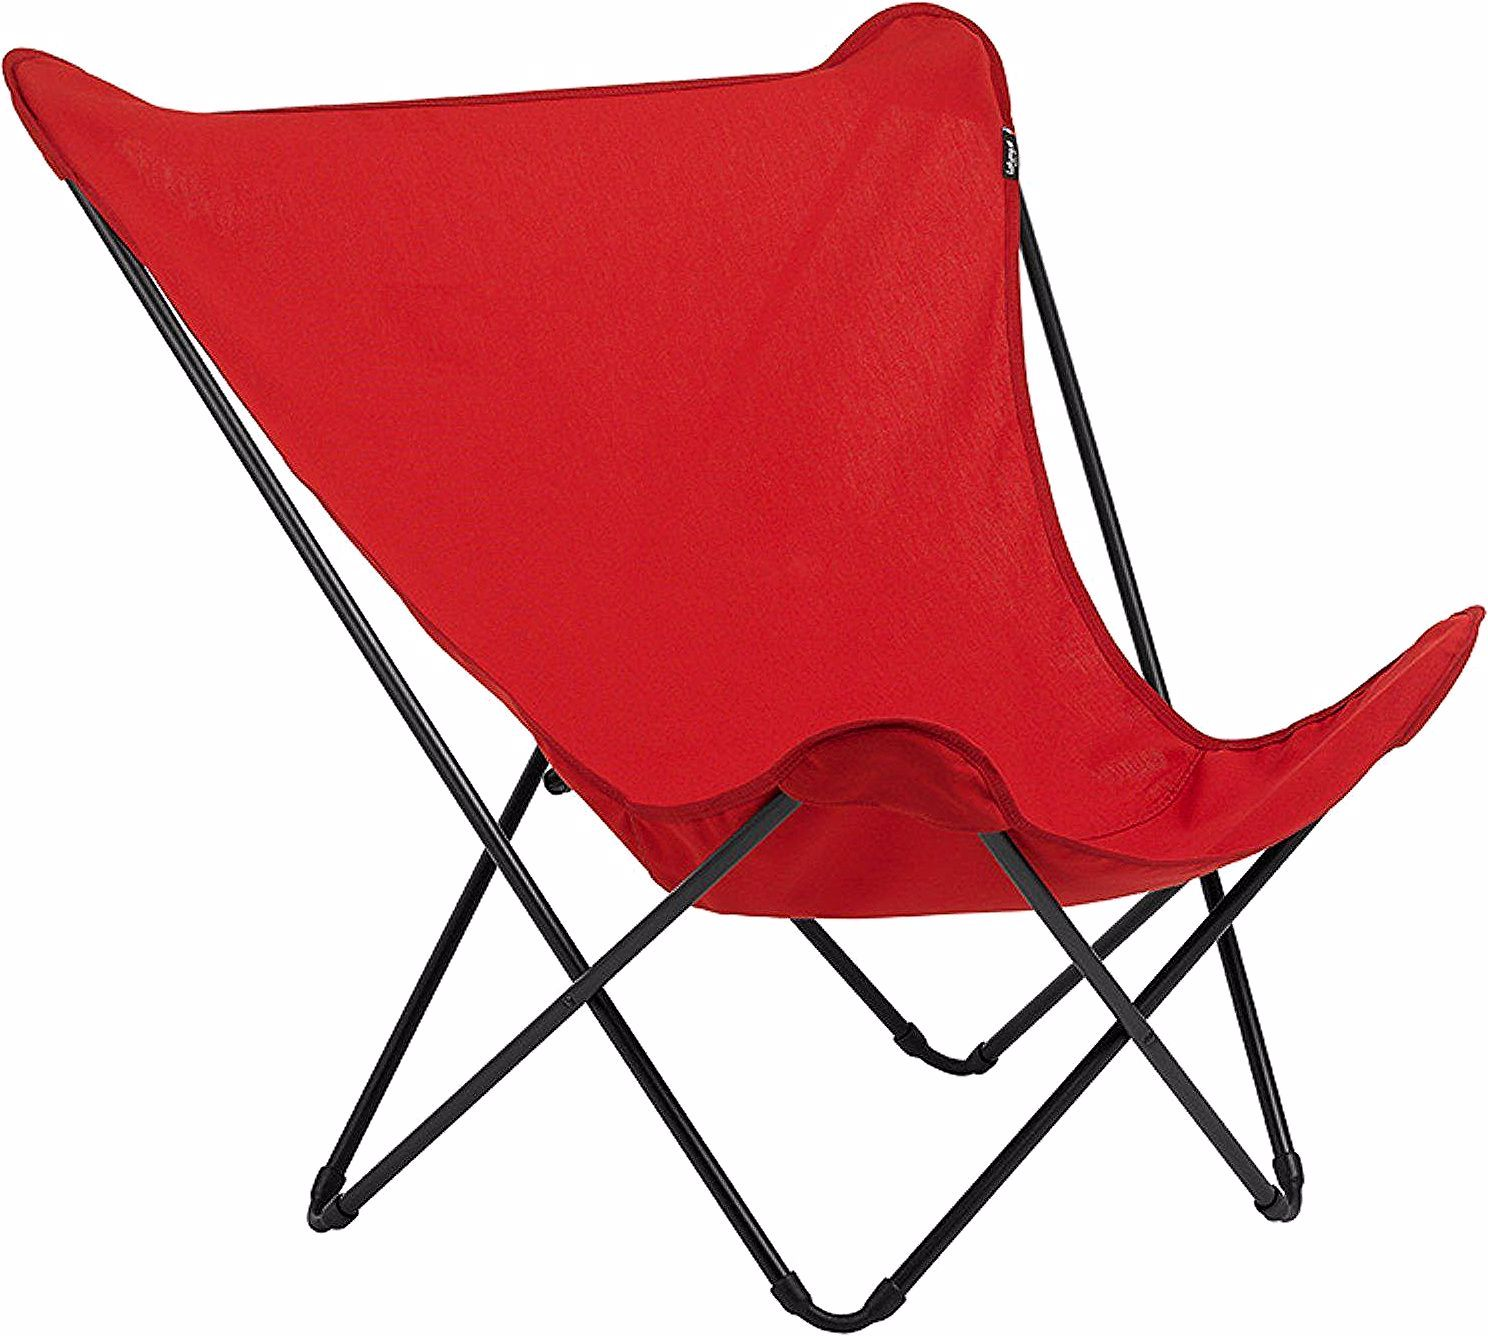 Table Et Chaise Folding Lounge Chair Chair Lawn Chairs